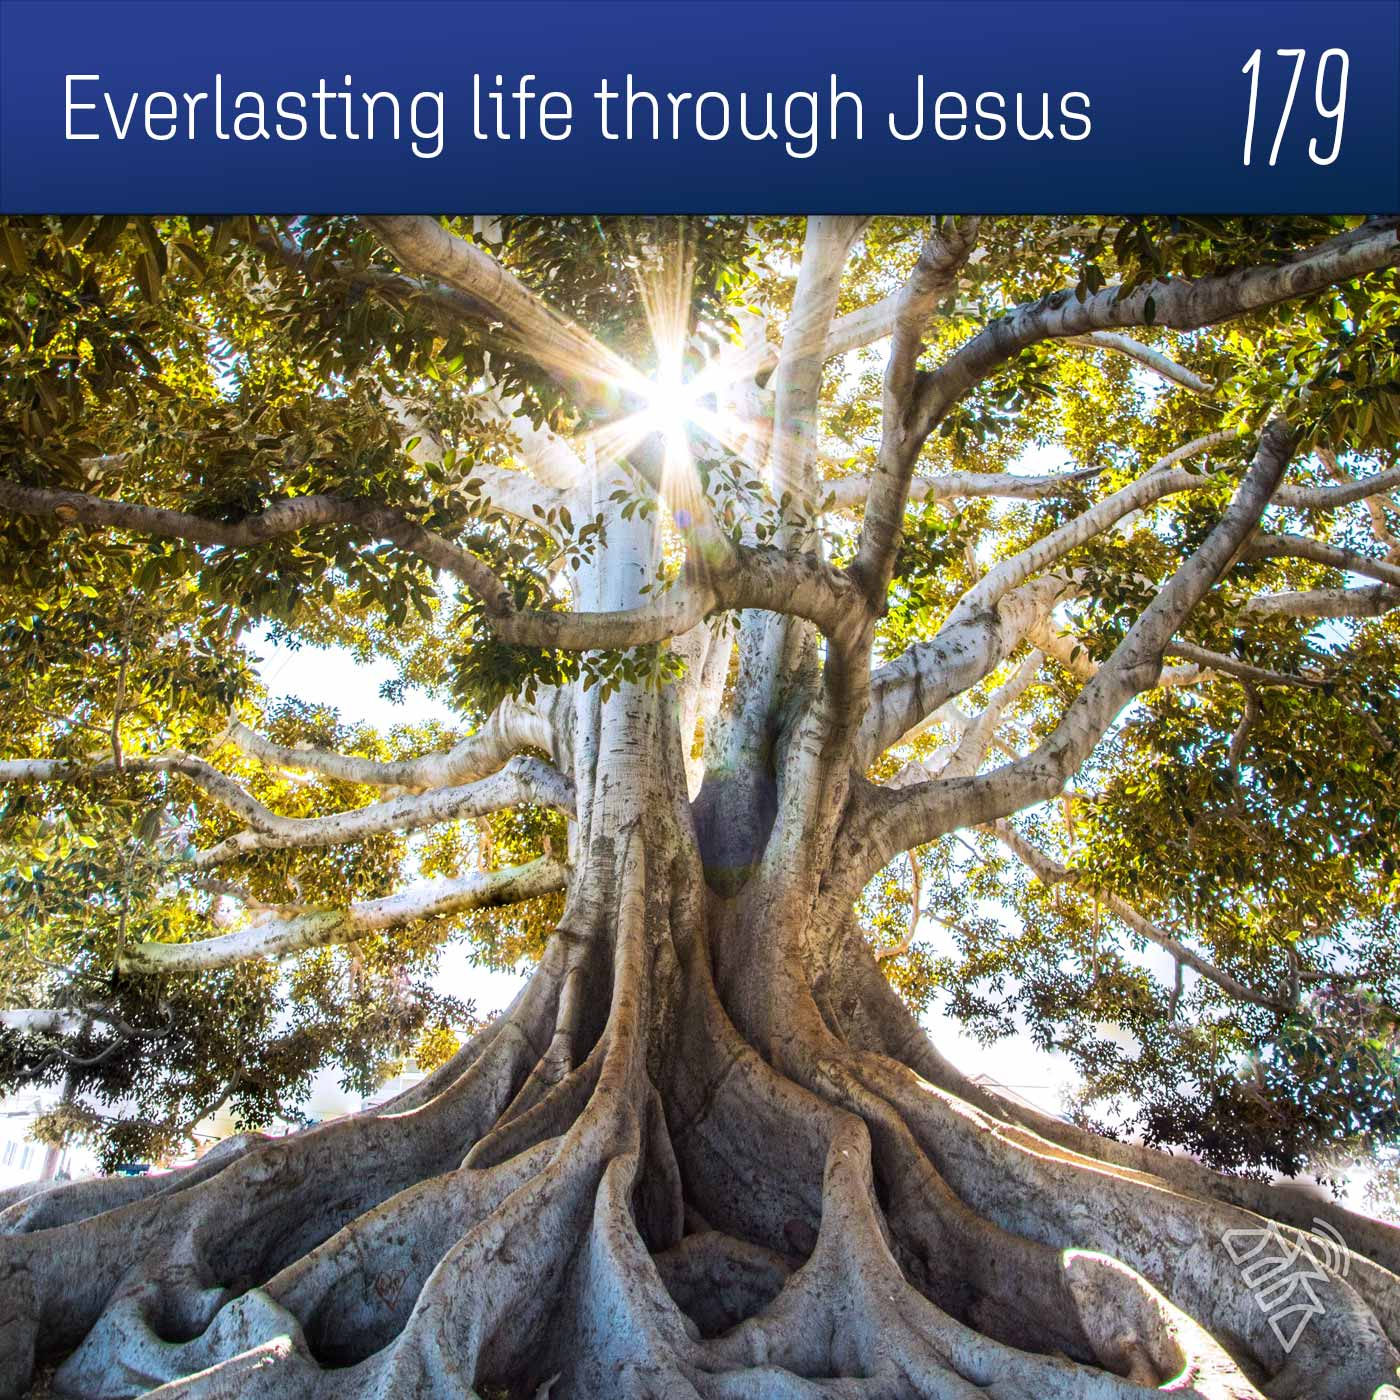 Everlasting life through Jesus